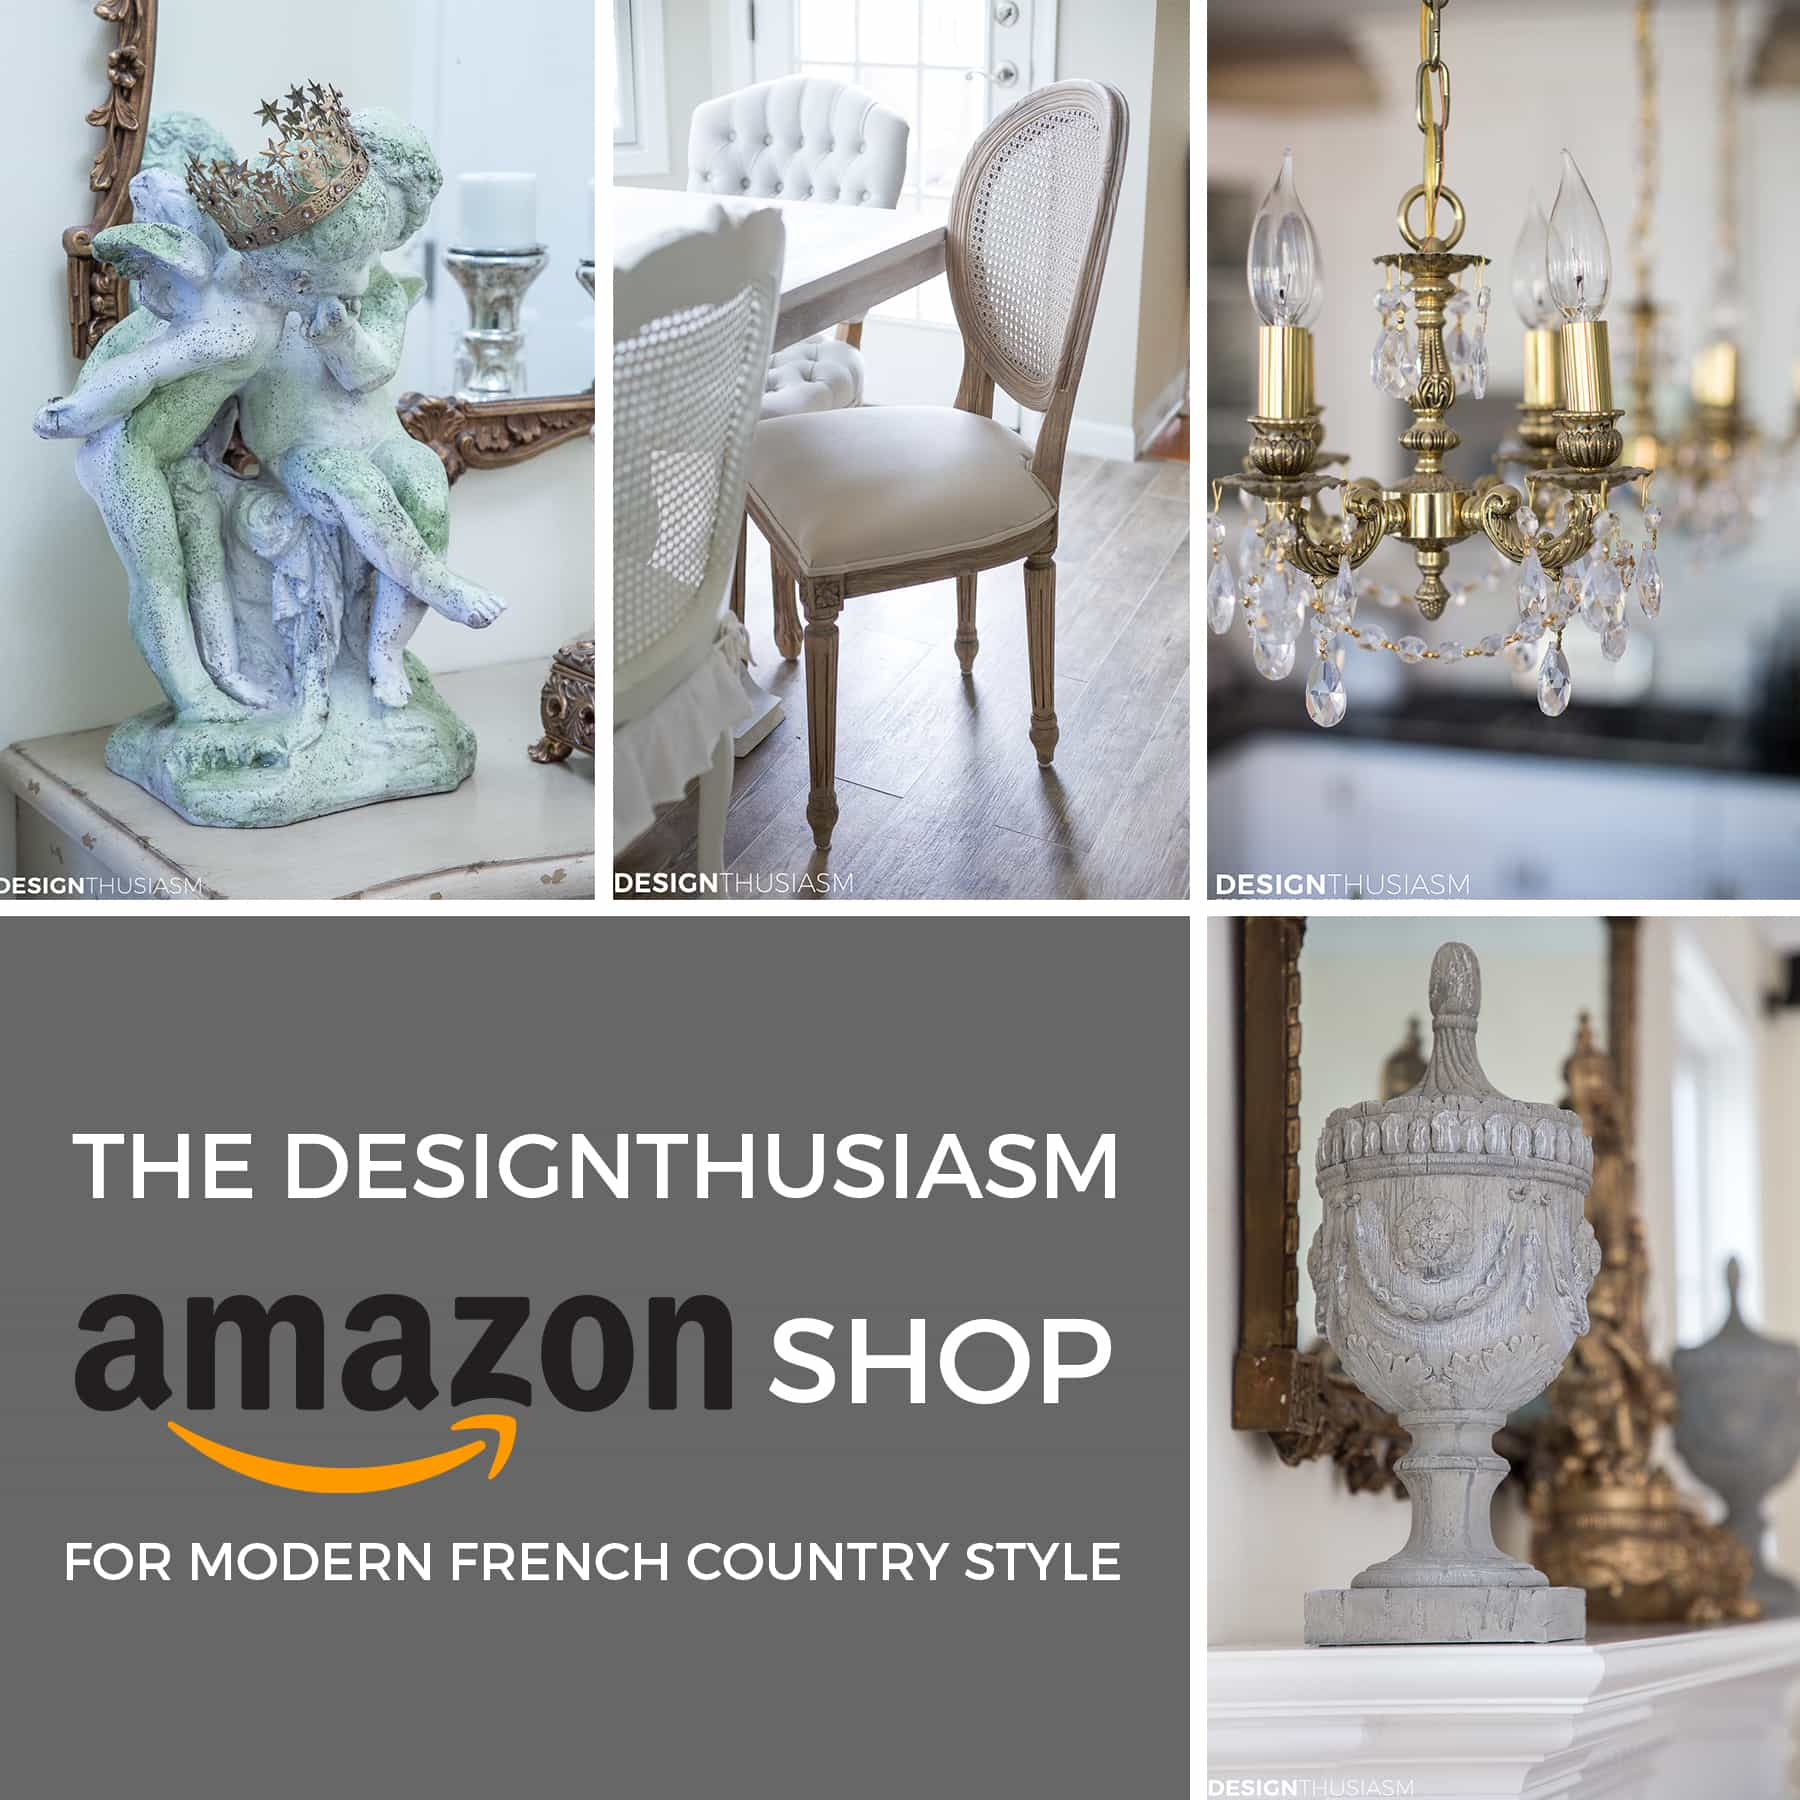 The Designthusiasm Amazon Shop for Modern French Country Style